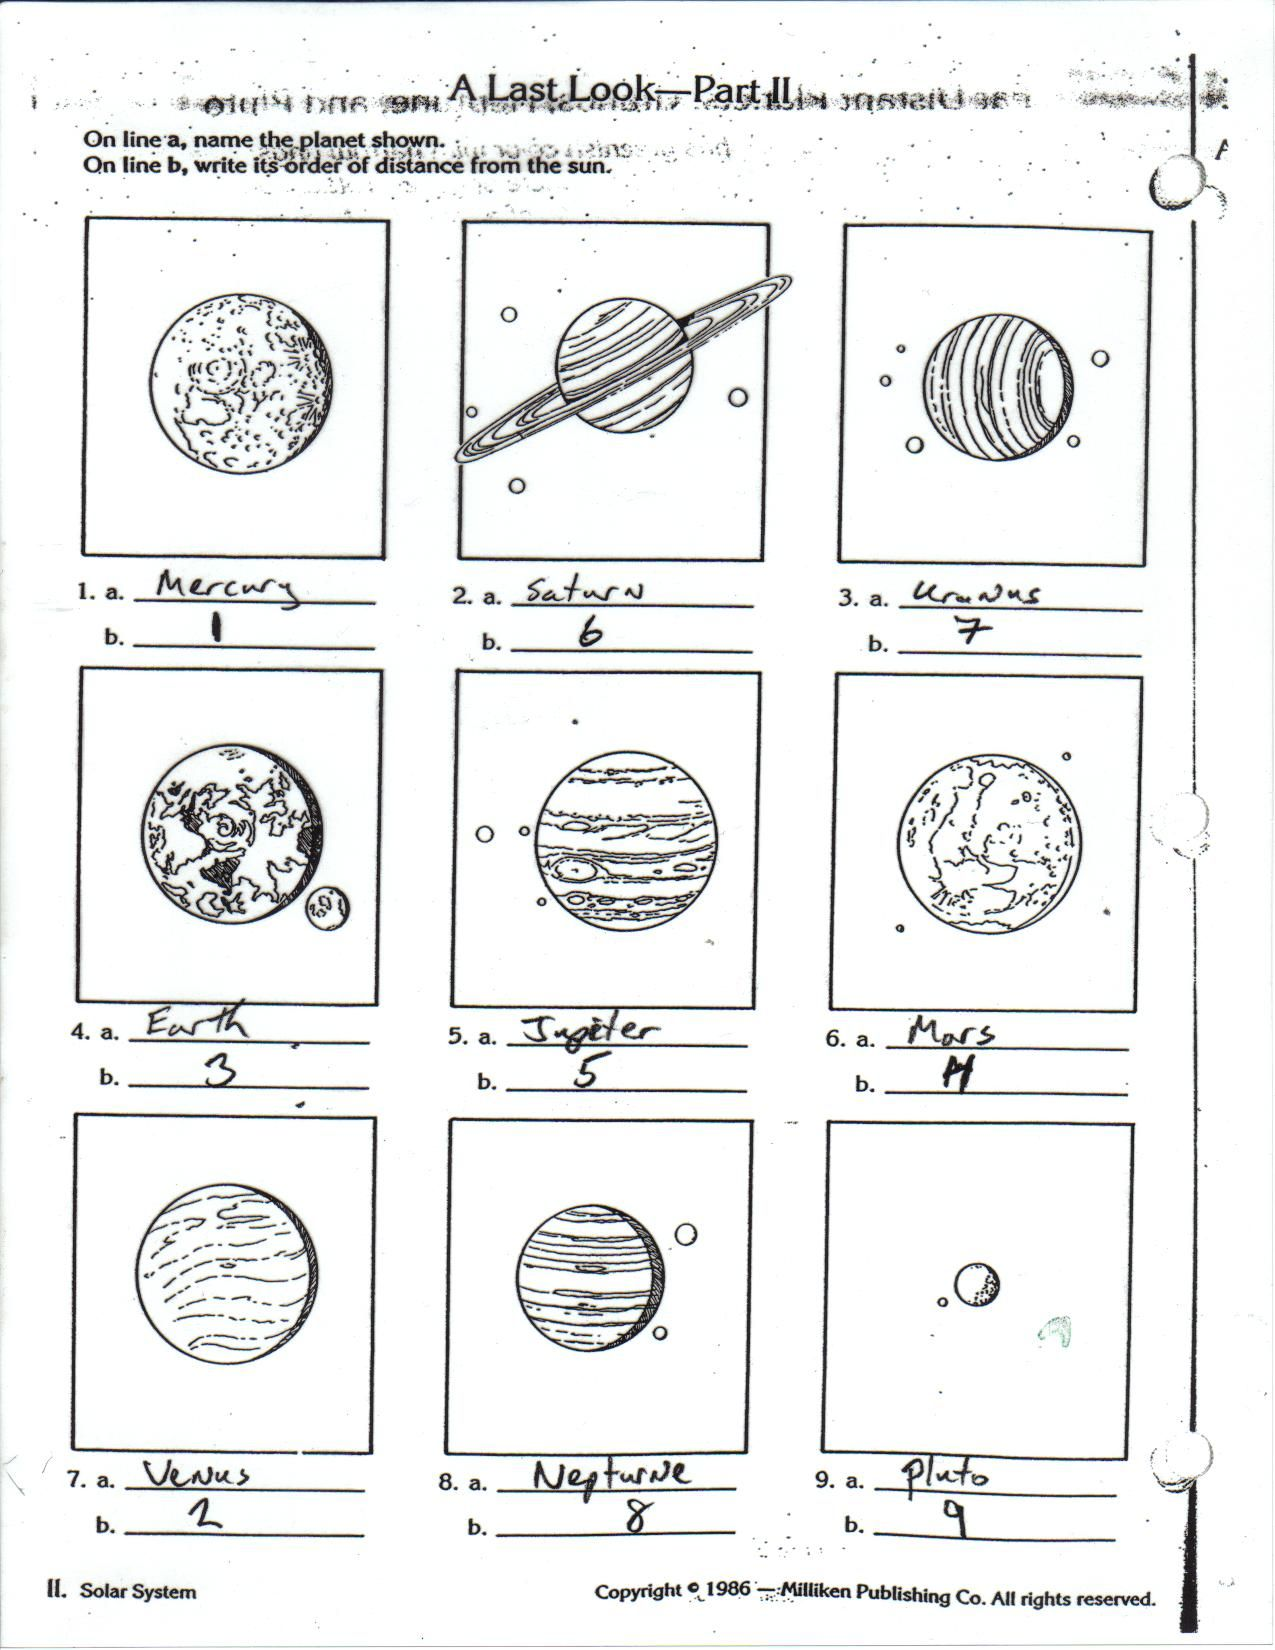 Worksheets Planets Worksheets planets for kids worksheets google search science pinterest the outer worksheet answers